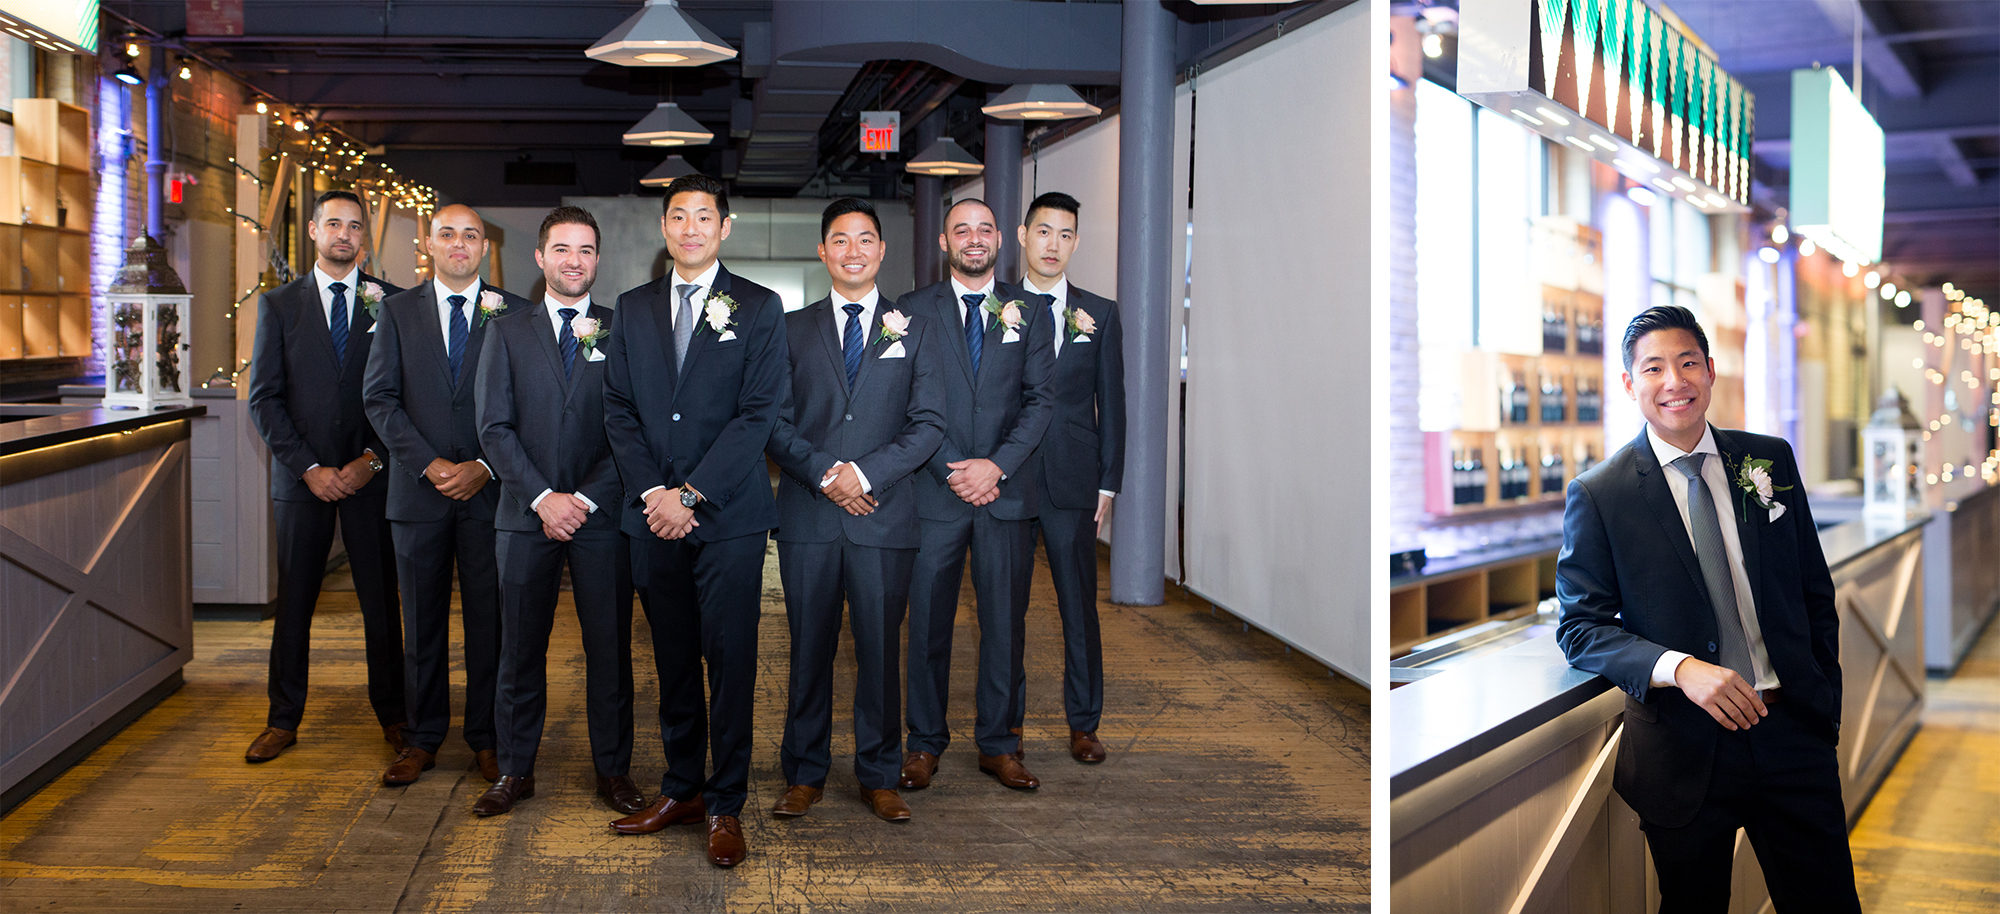 Groomemen Groom Zsuzsi Pal Photography Toronto Wedding 2nd Second Floor Events